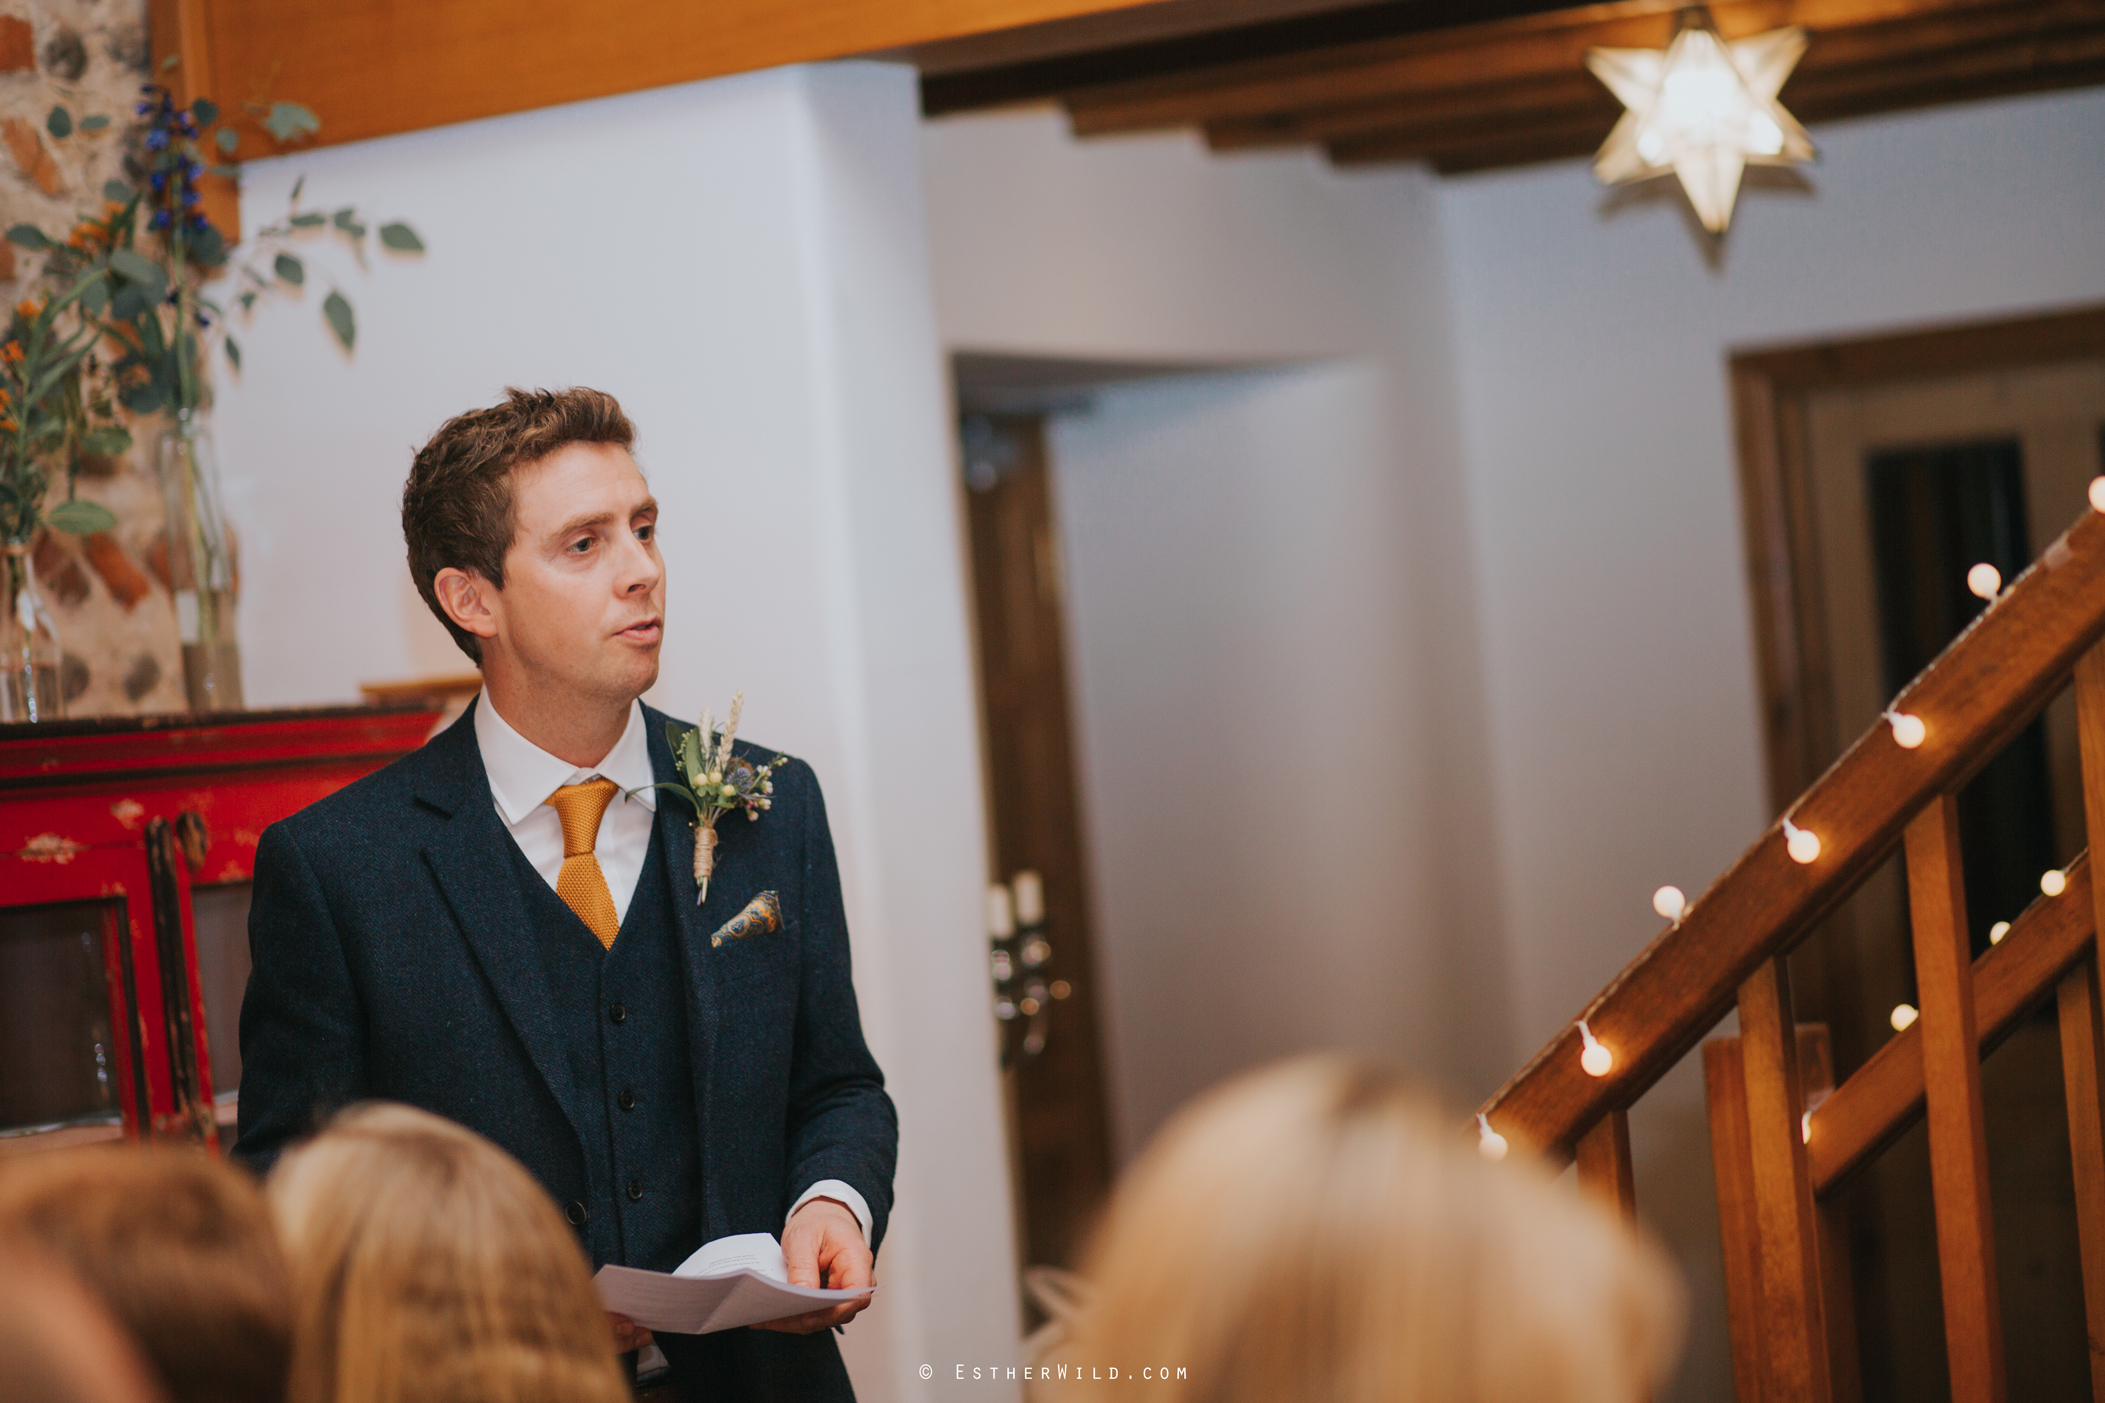 Wedding_Photographer_Chaucer_Barn_Holt_Norfolk_Country_Rustic_Venue_Copyright_Esther_Wild_IMG_1610_Z72A0792.jpg